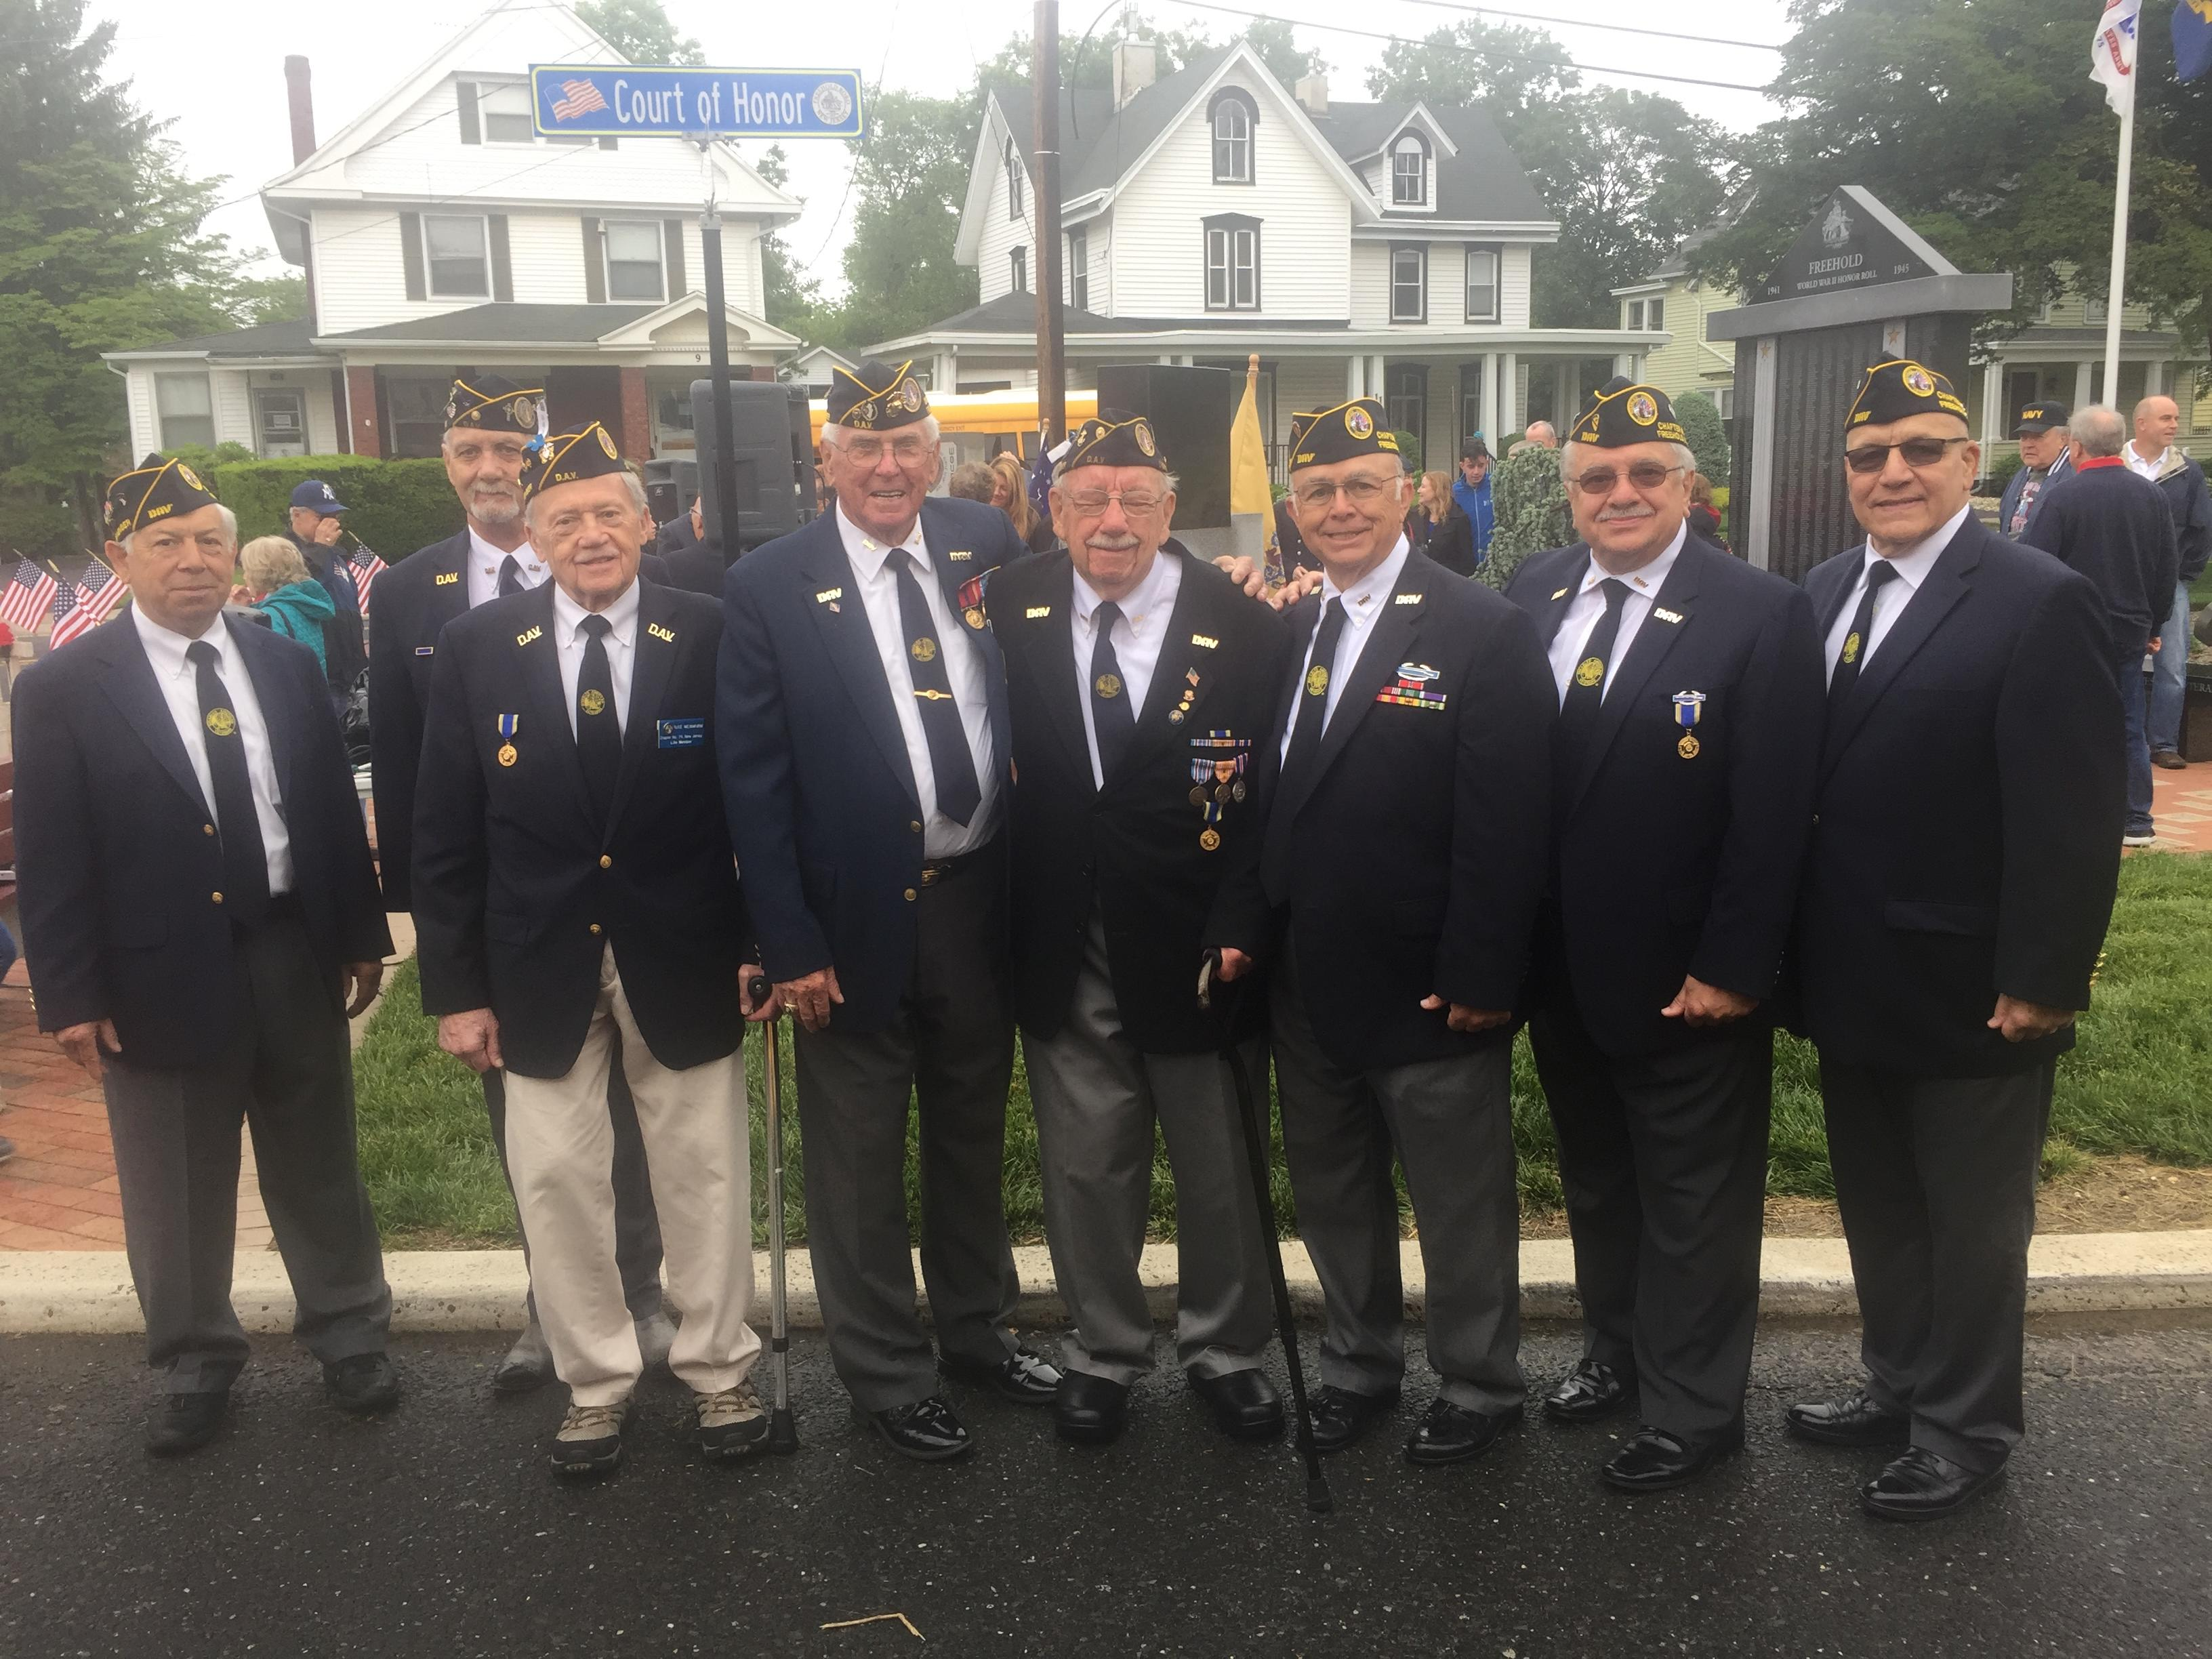 143rd. Year Freehold Memorial Day Parade